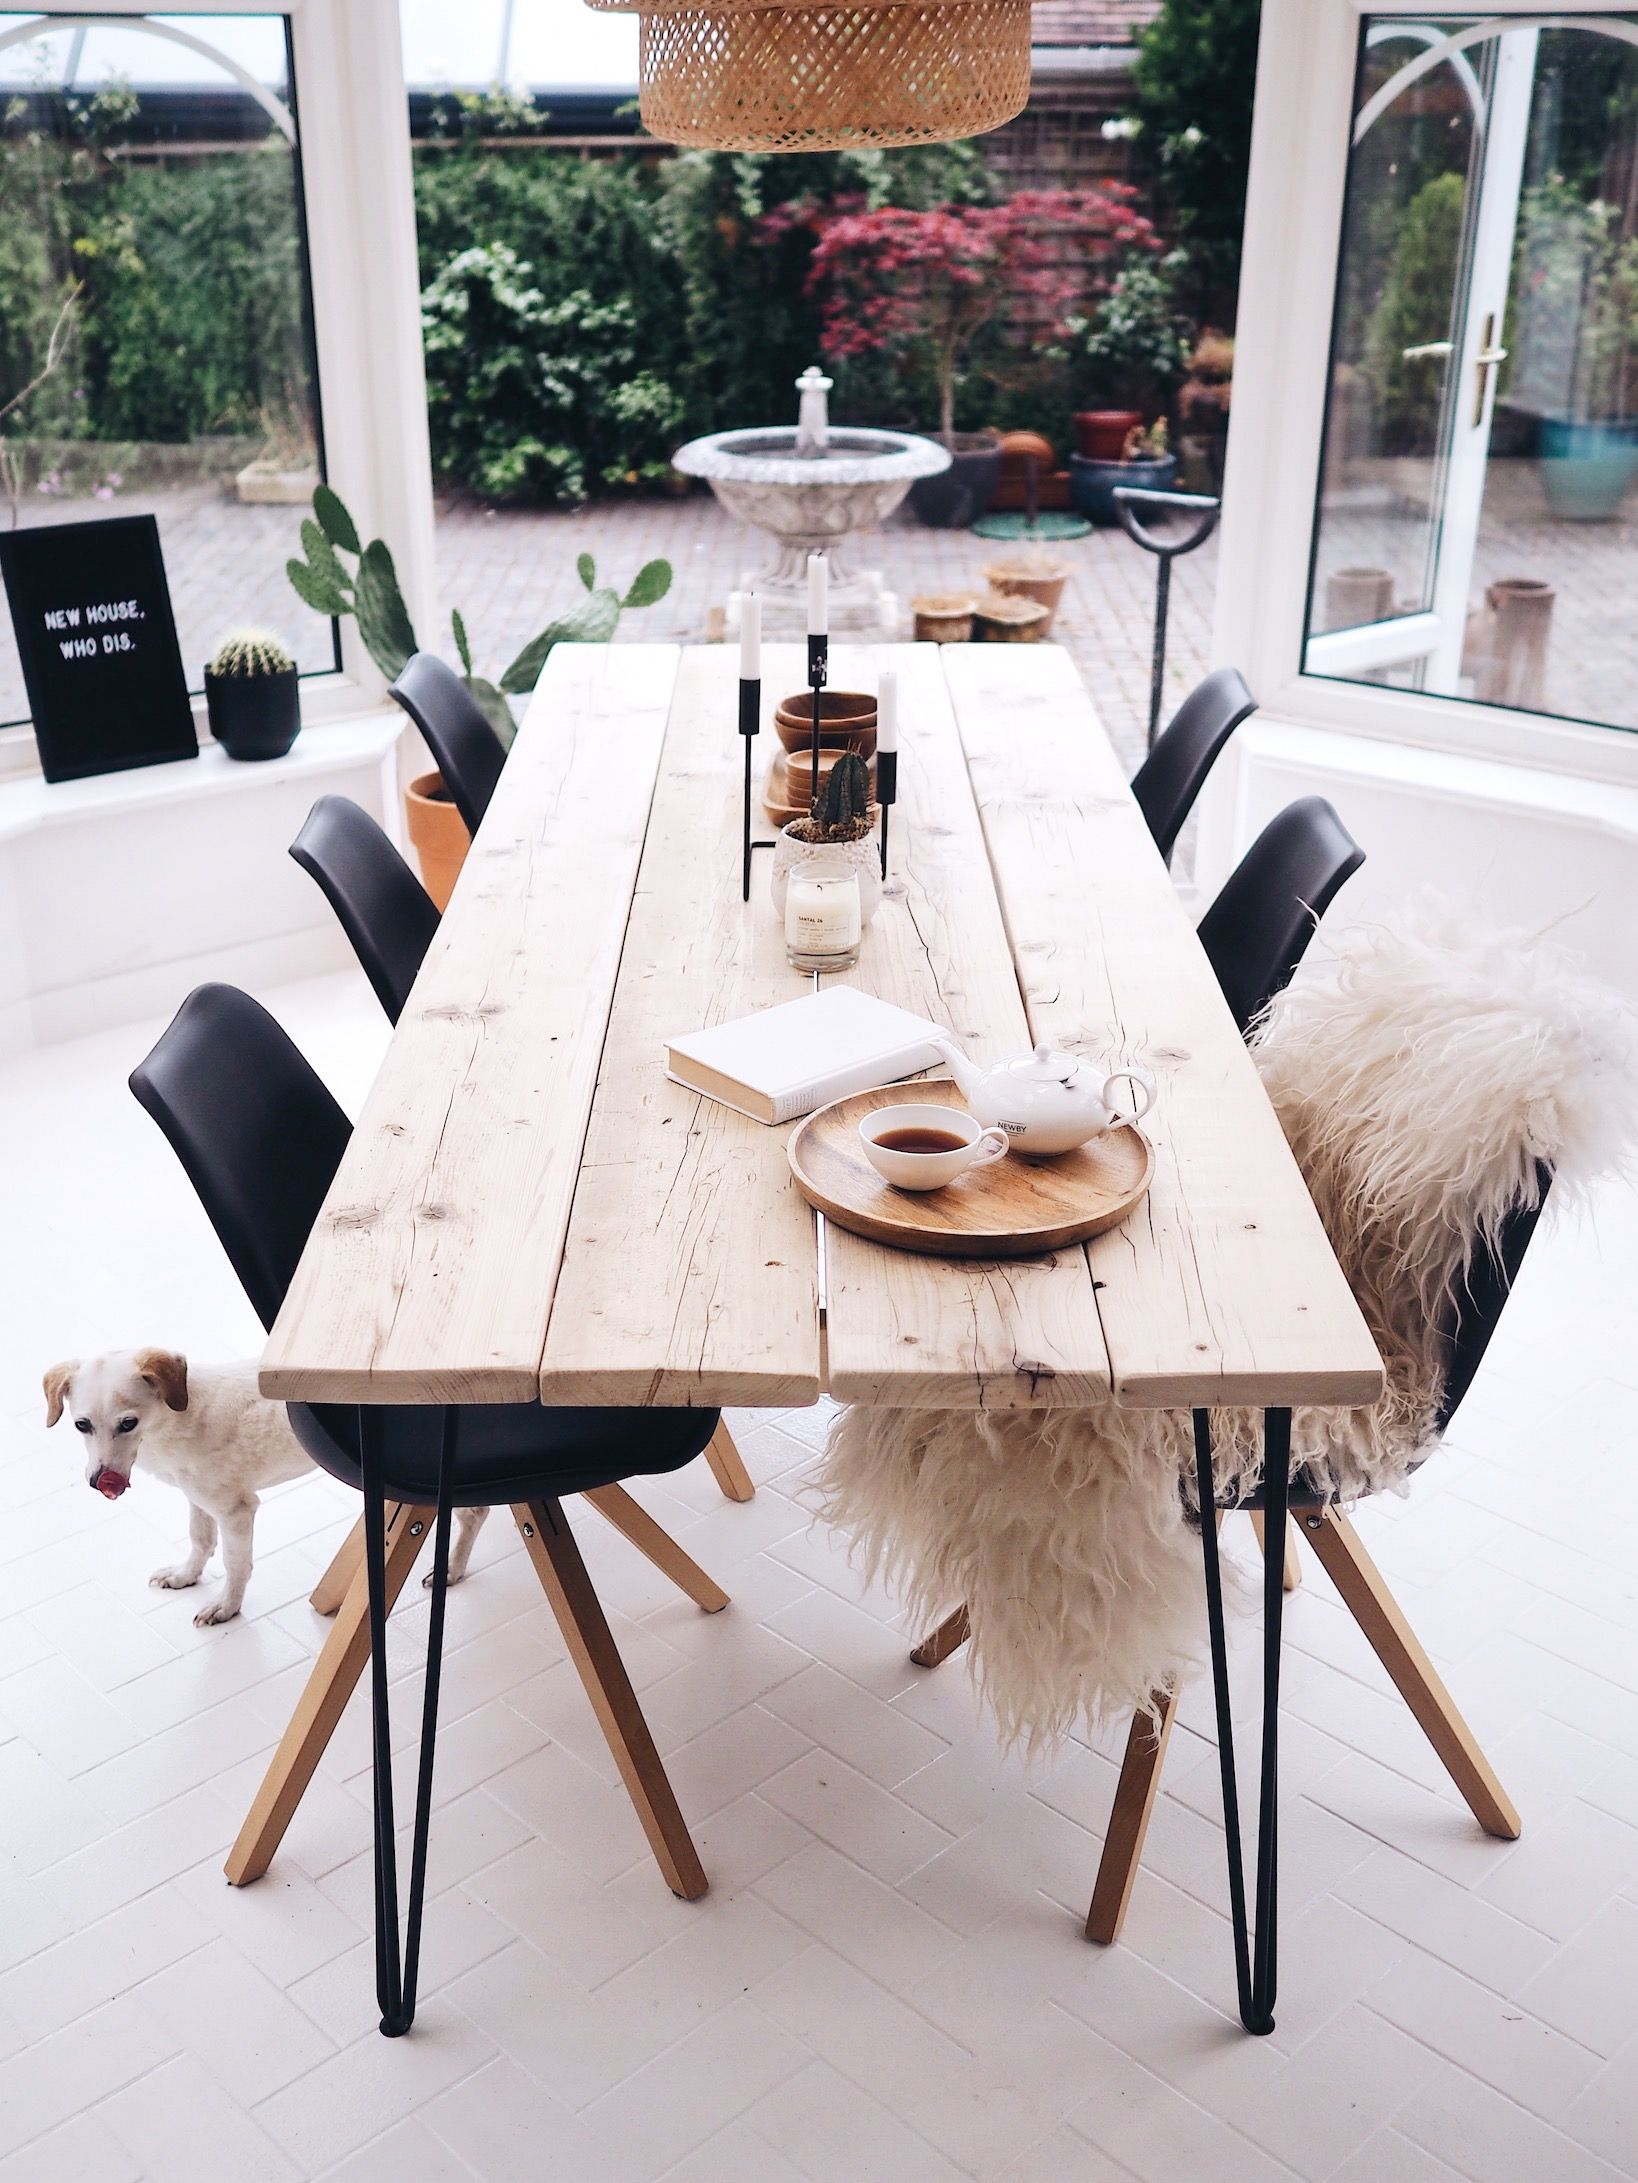 OUR DIY DINING TABLE - THE DO'S & DON'TS! By Break The Loop